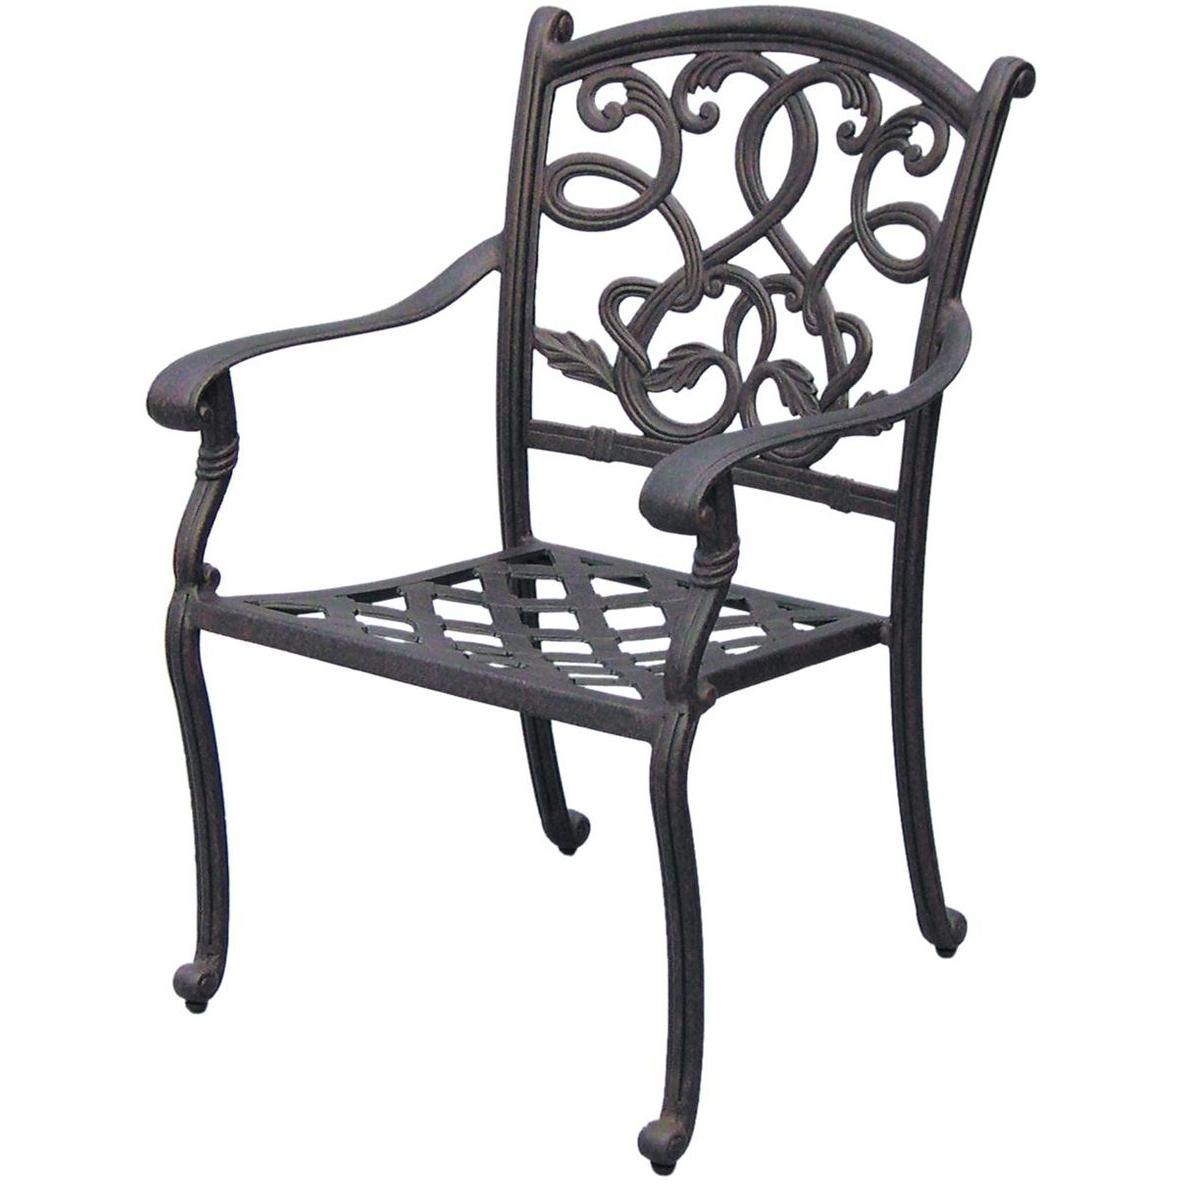 Darlee Santa Monica Cast Aluminum Outdoor Patio Dining Chair With Cushion - Antique Bronze